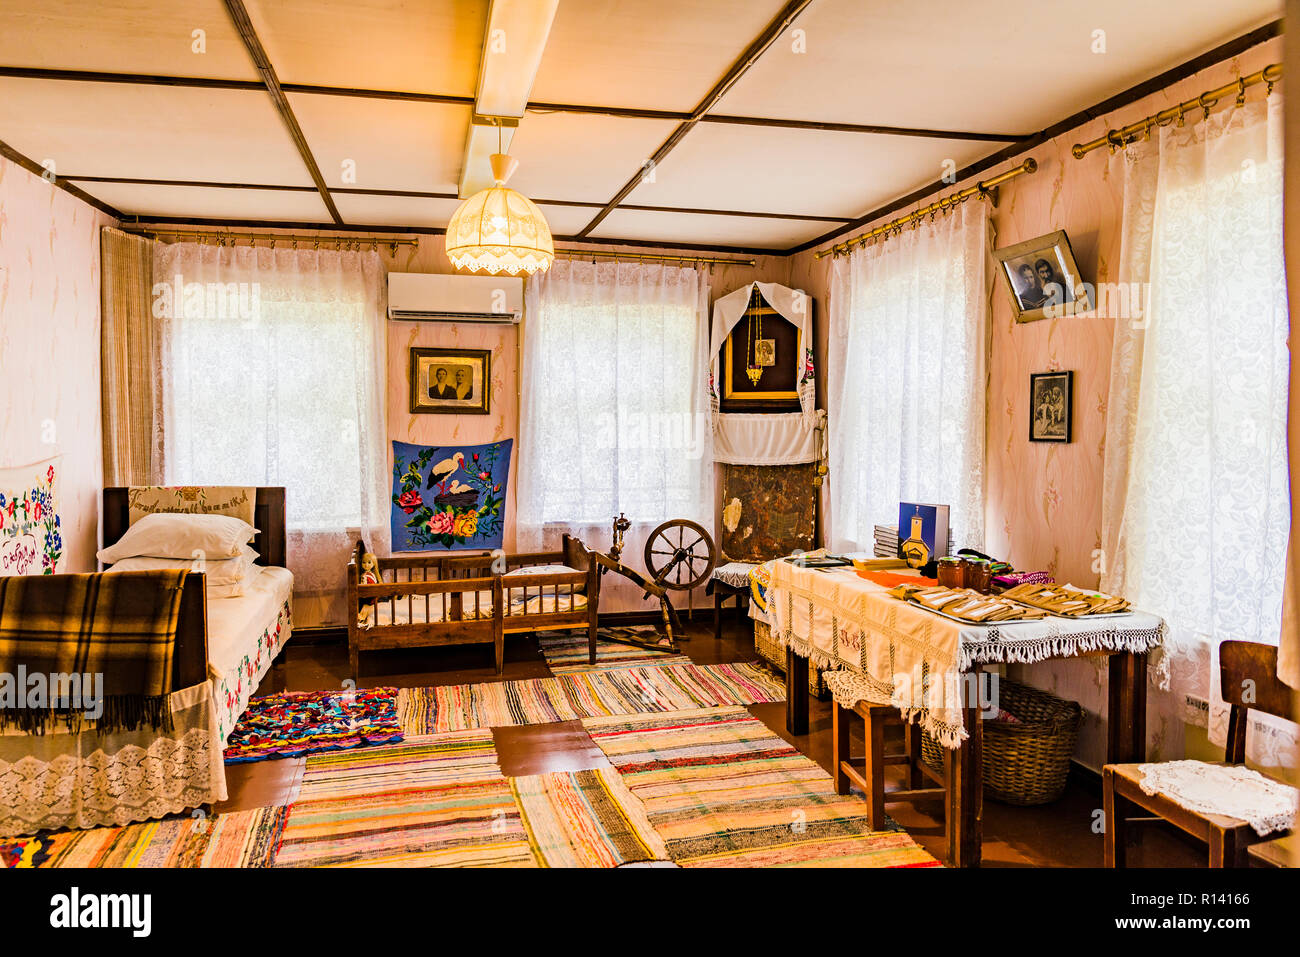 Interior Kolkja Museum of Old Believers. Russians whose ancestors went against reforms in the Russian Orthodox Church 300 years ago and for centuries  - Stock Image